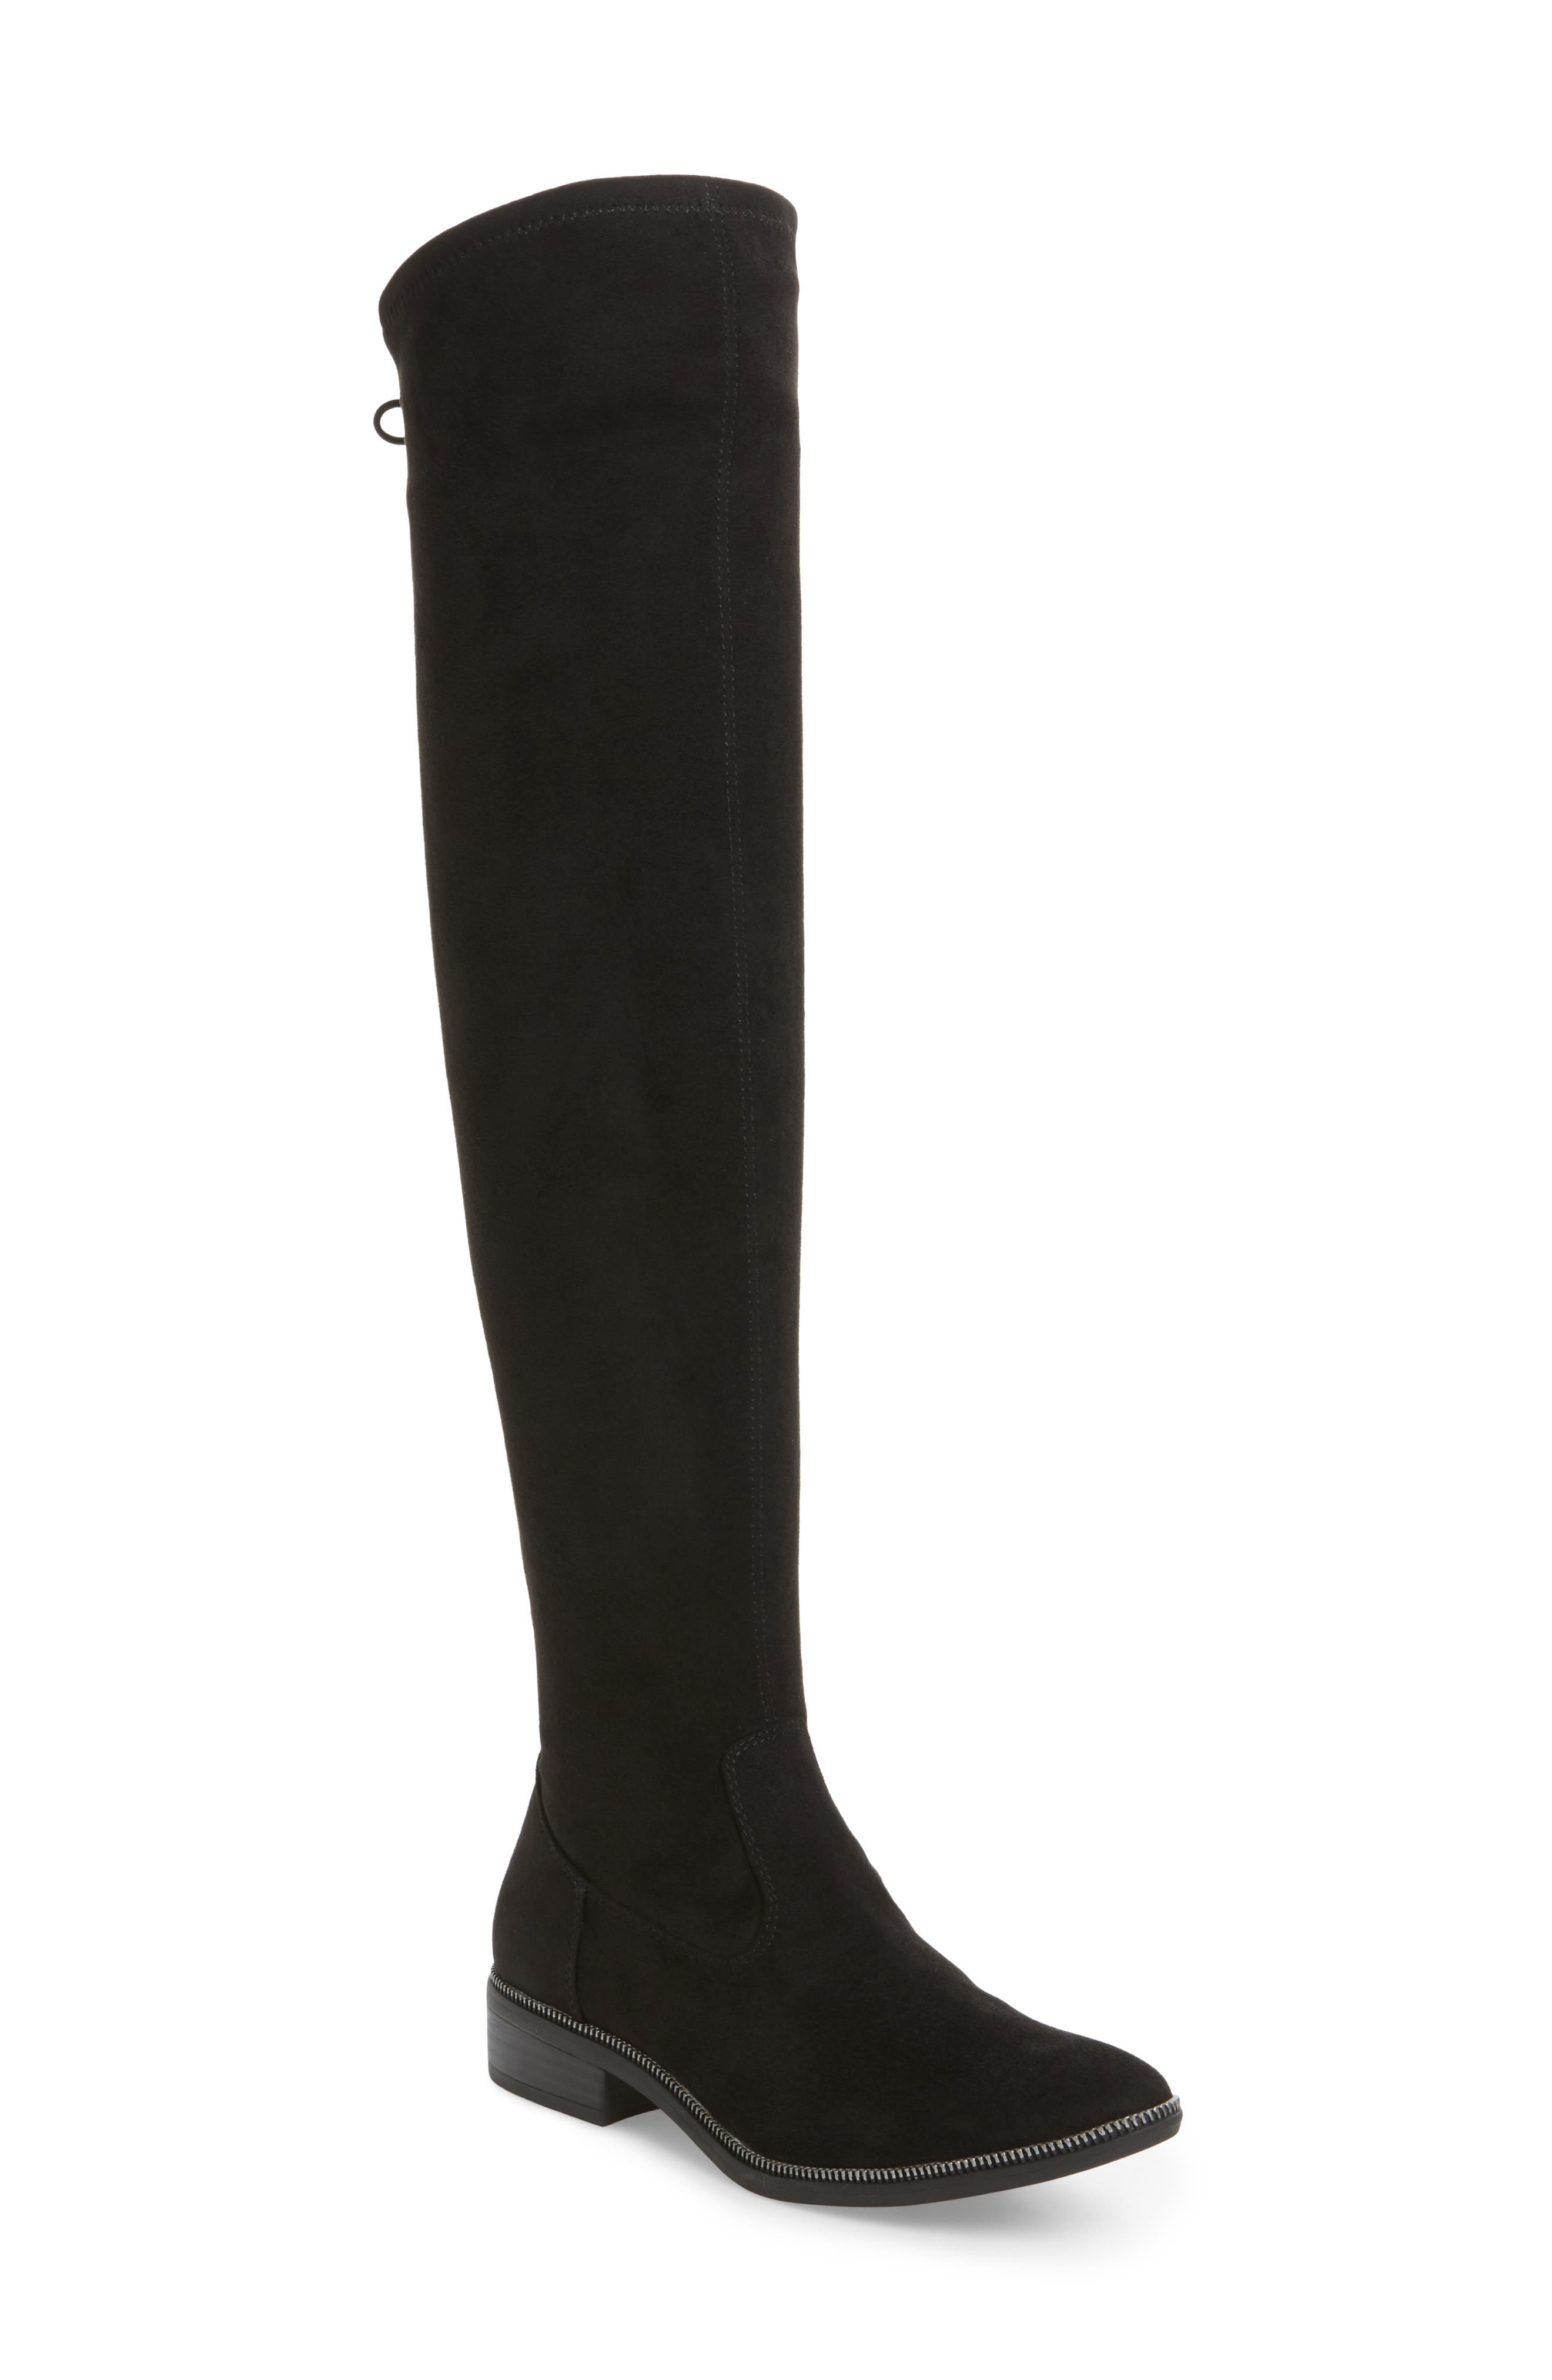 Alternate Image 1 Selected - Tamaris Phanie Over the Knee Stretch Boot (Women)